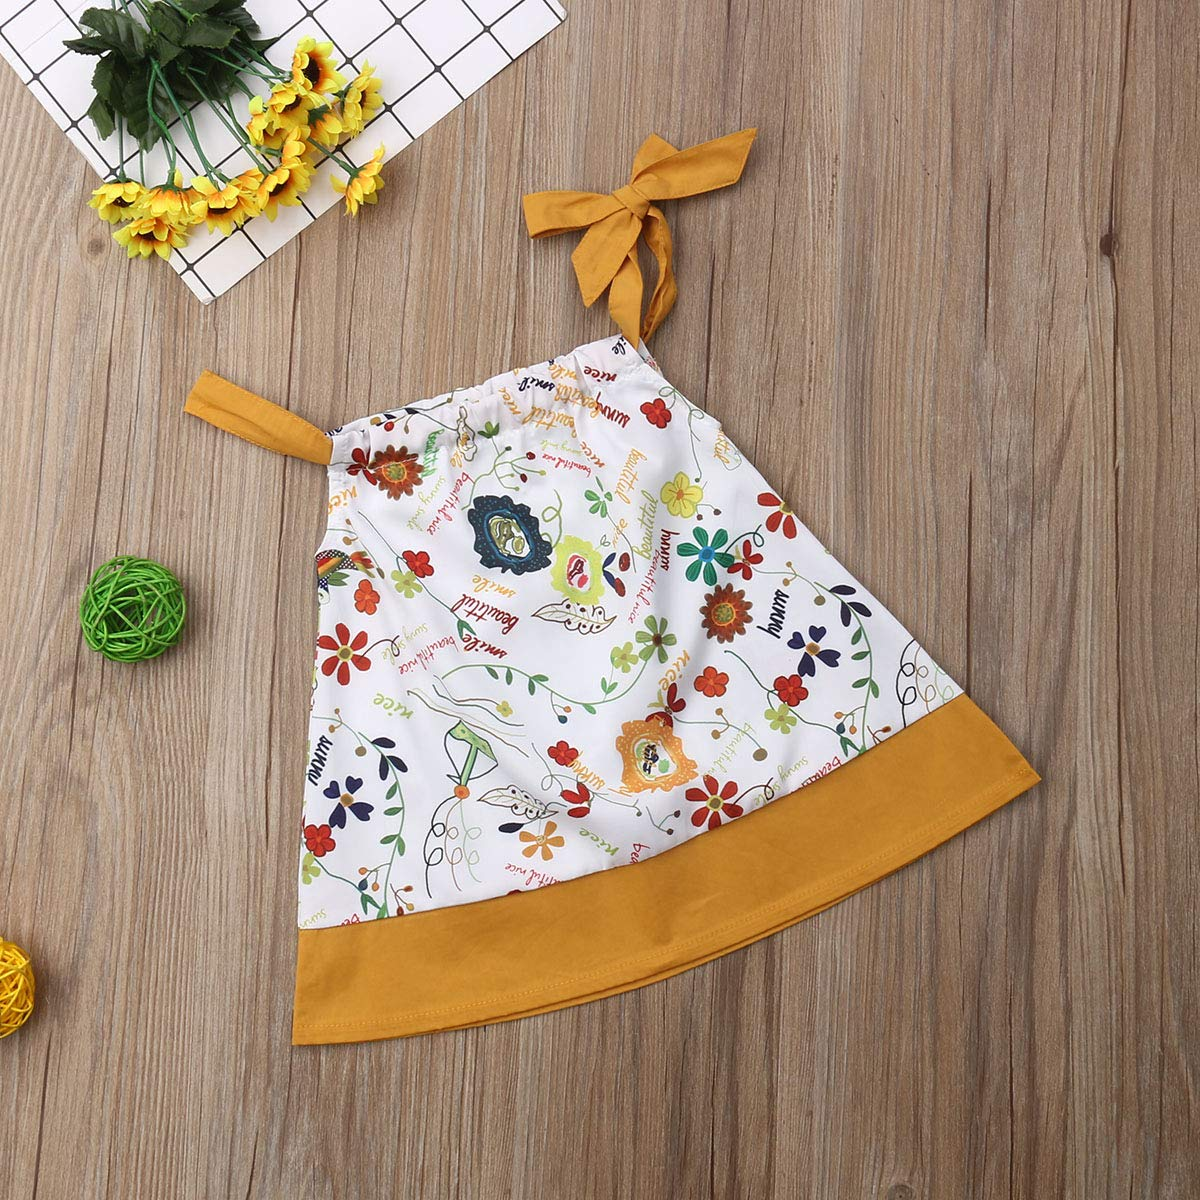 Infant Kid Baby Girls Halter Floral Dress Sleeveless Cartoon Princess Dress Sundress Summer Casual Outfit 3M-3Y